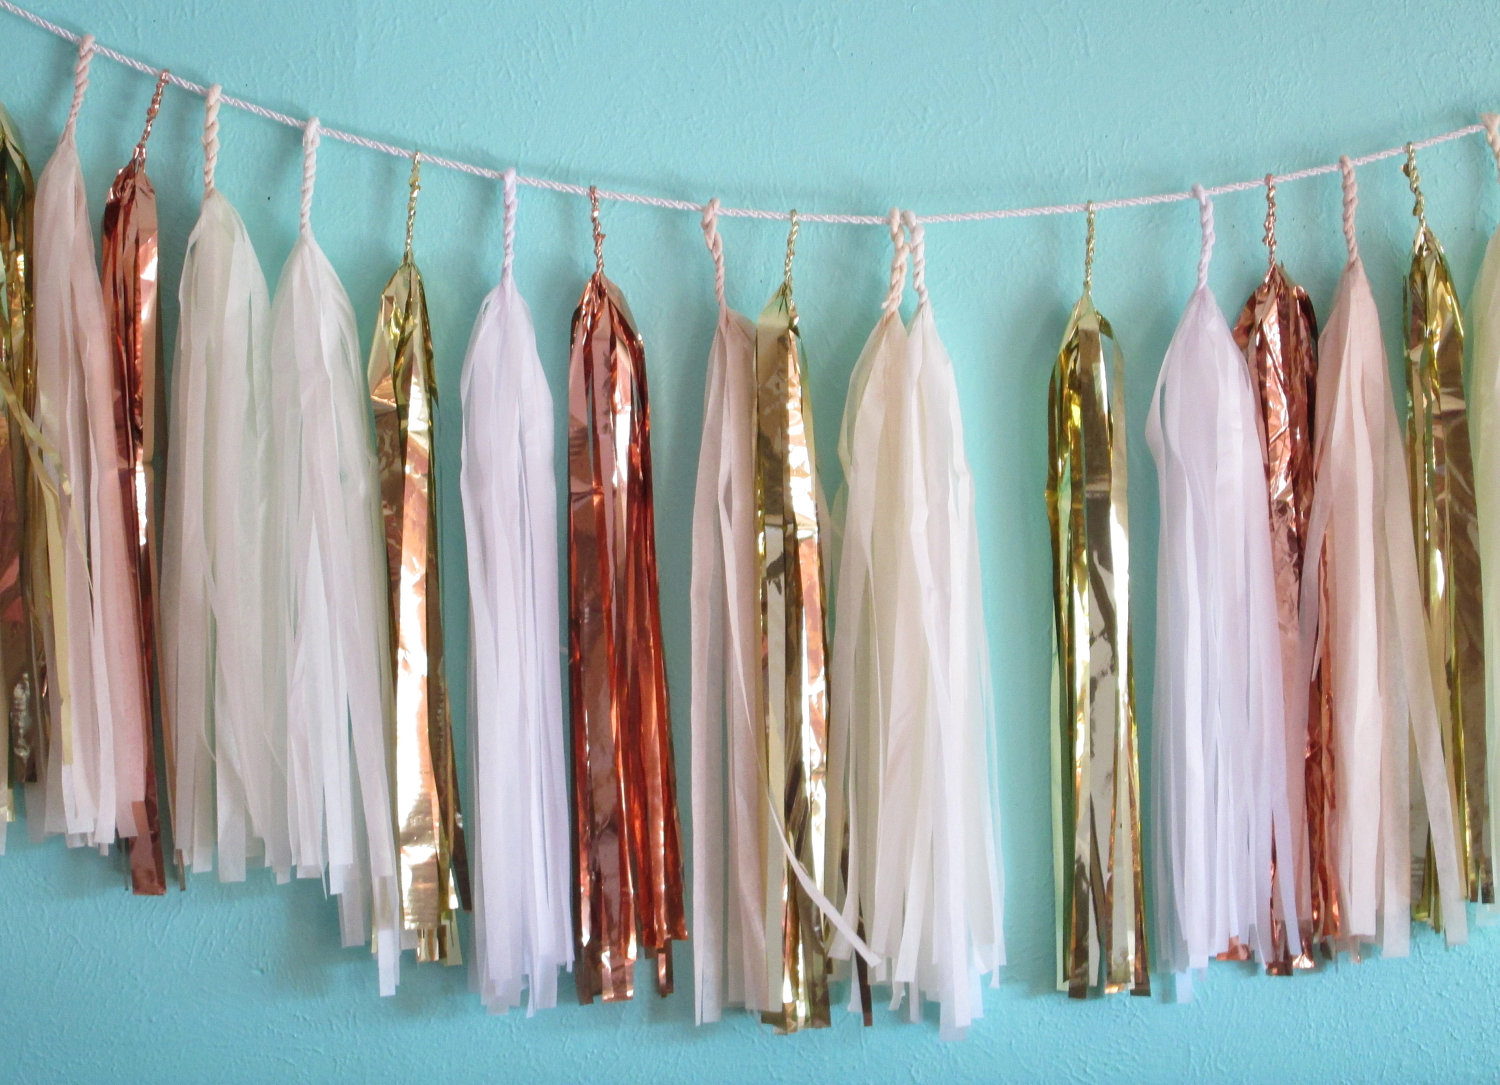 Festive-metallic-bunting-for-new-years-inspired-weddings.original